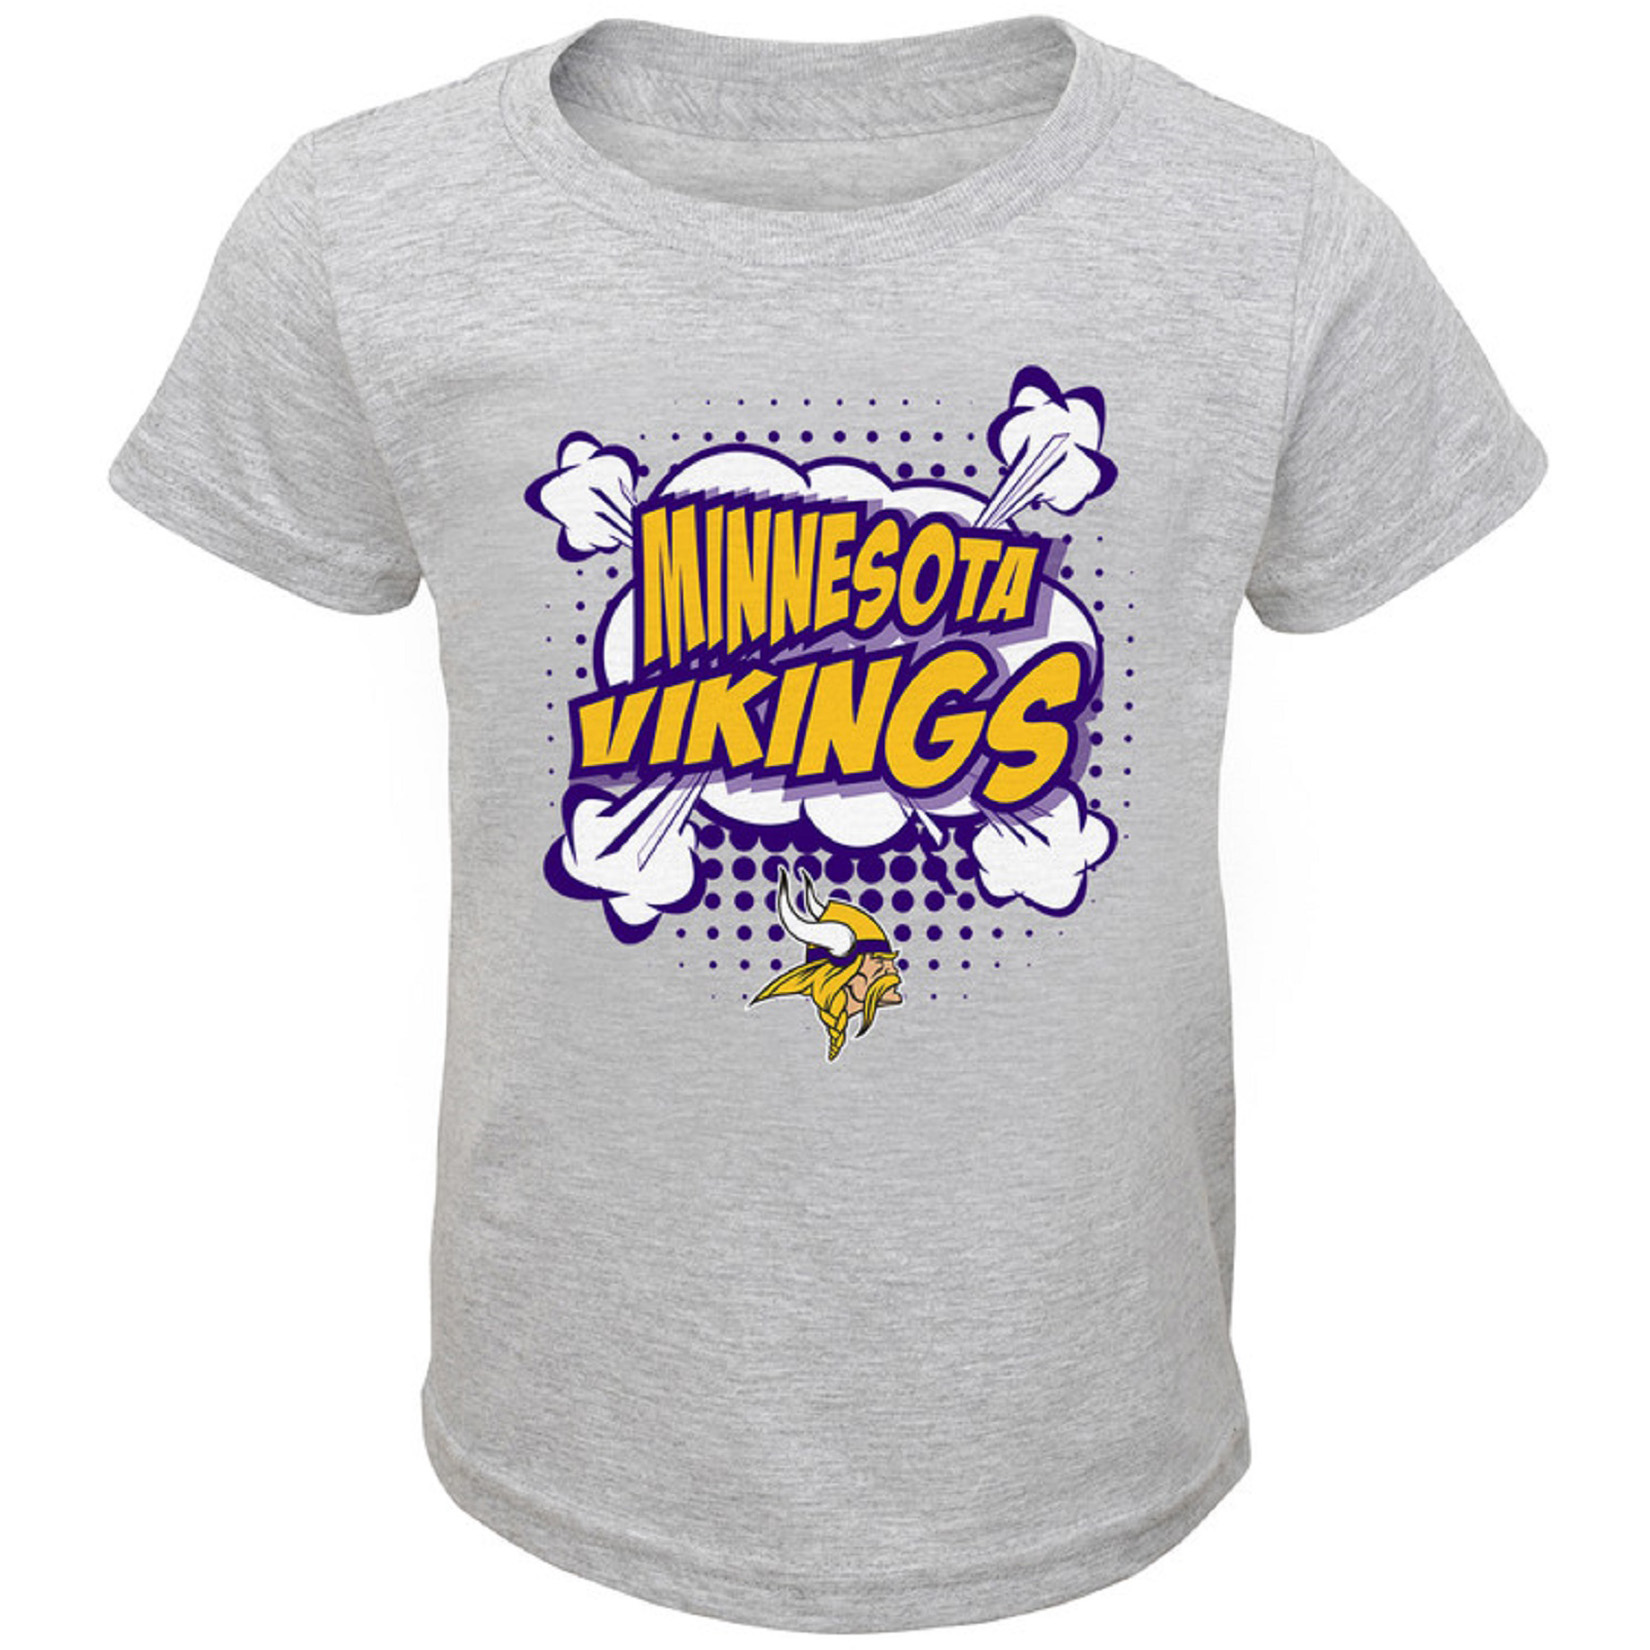 Infant Heathered Gray Minnesota Vikings Crew Neck T-Shirt